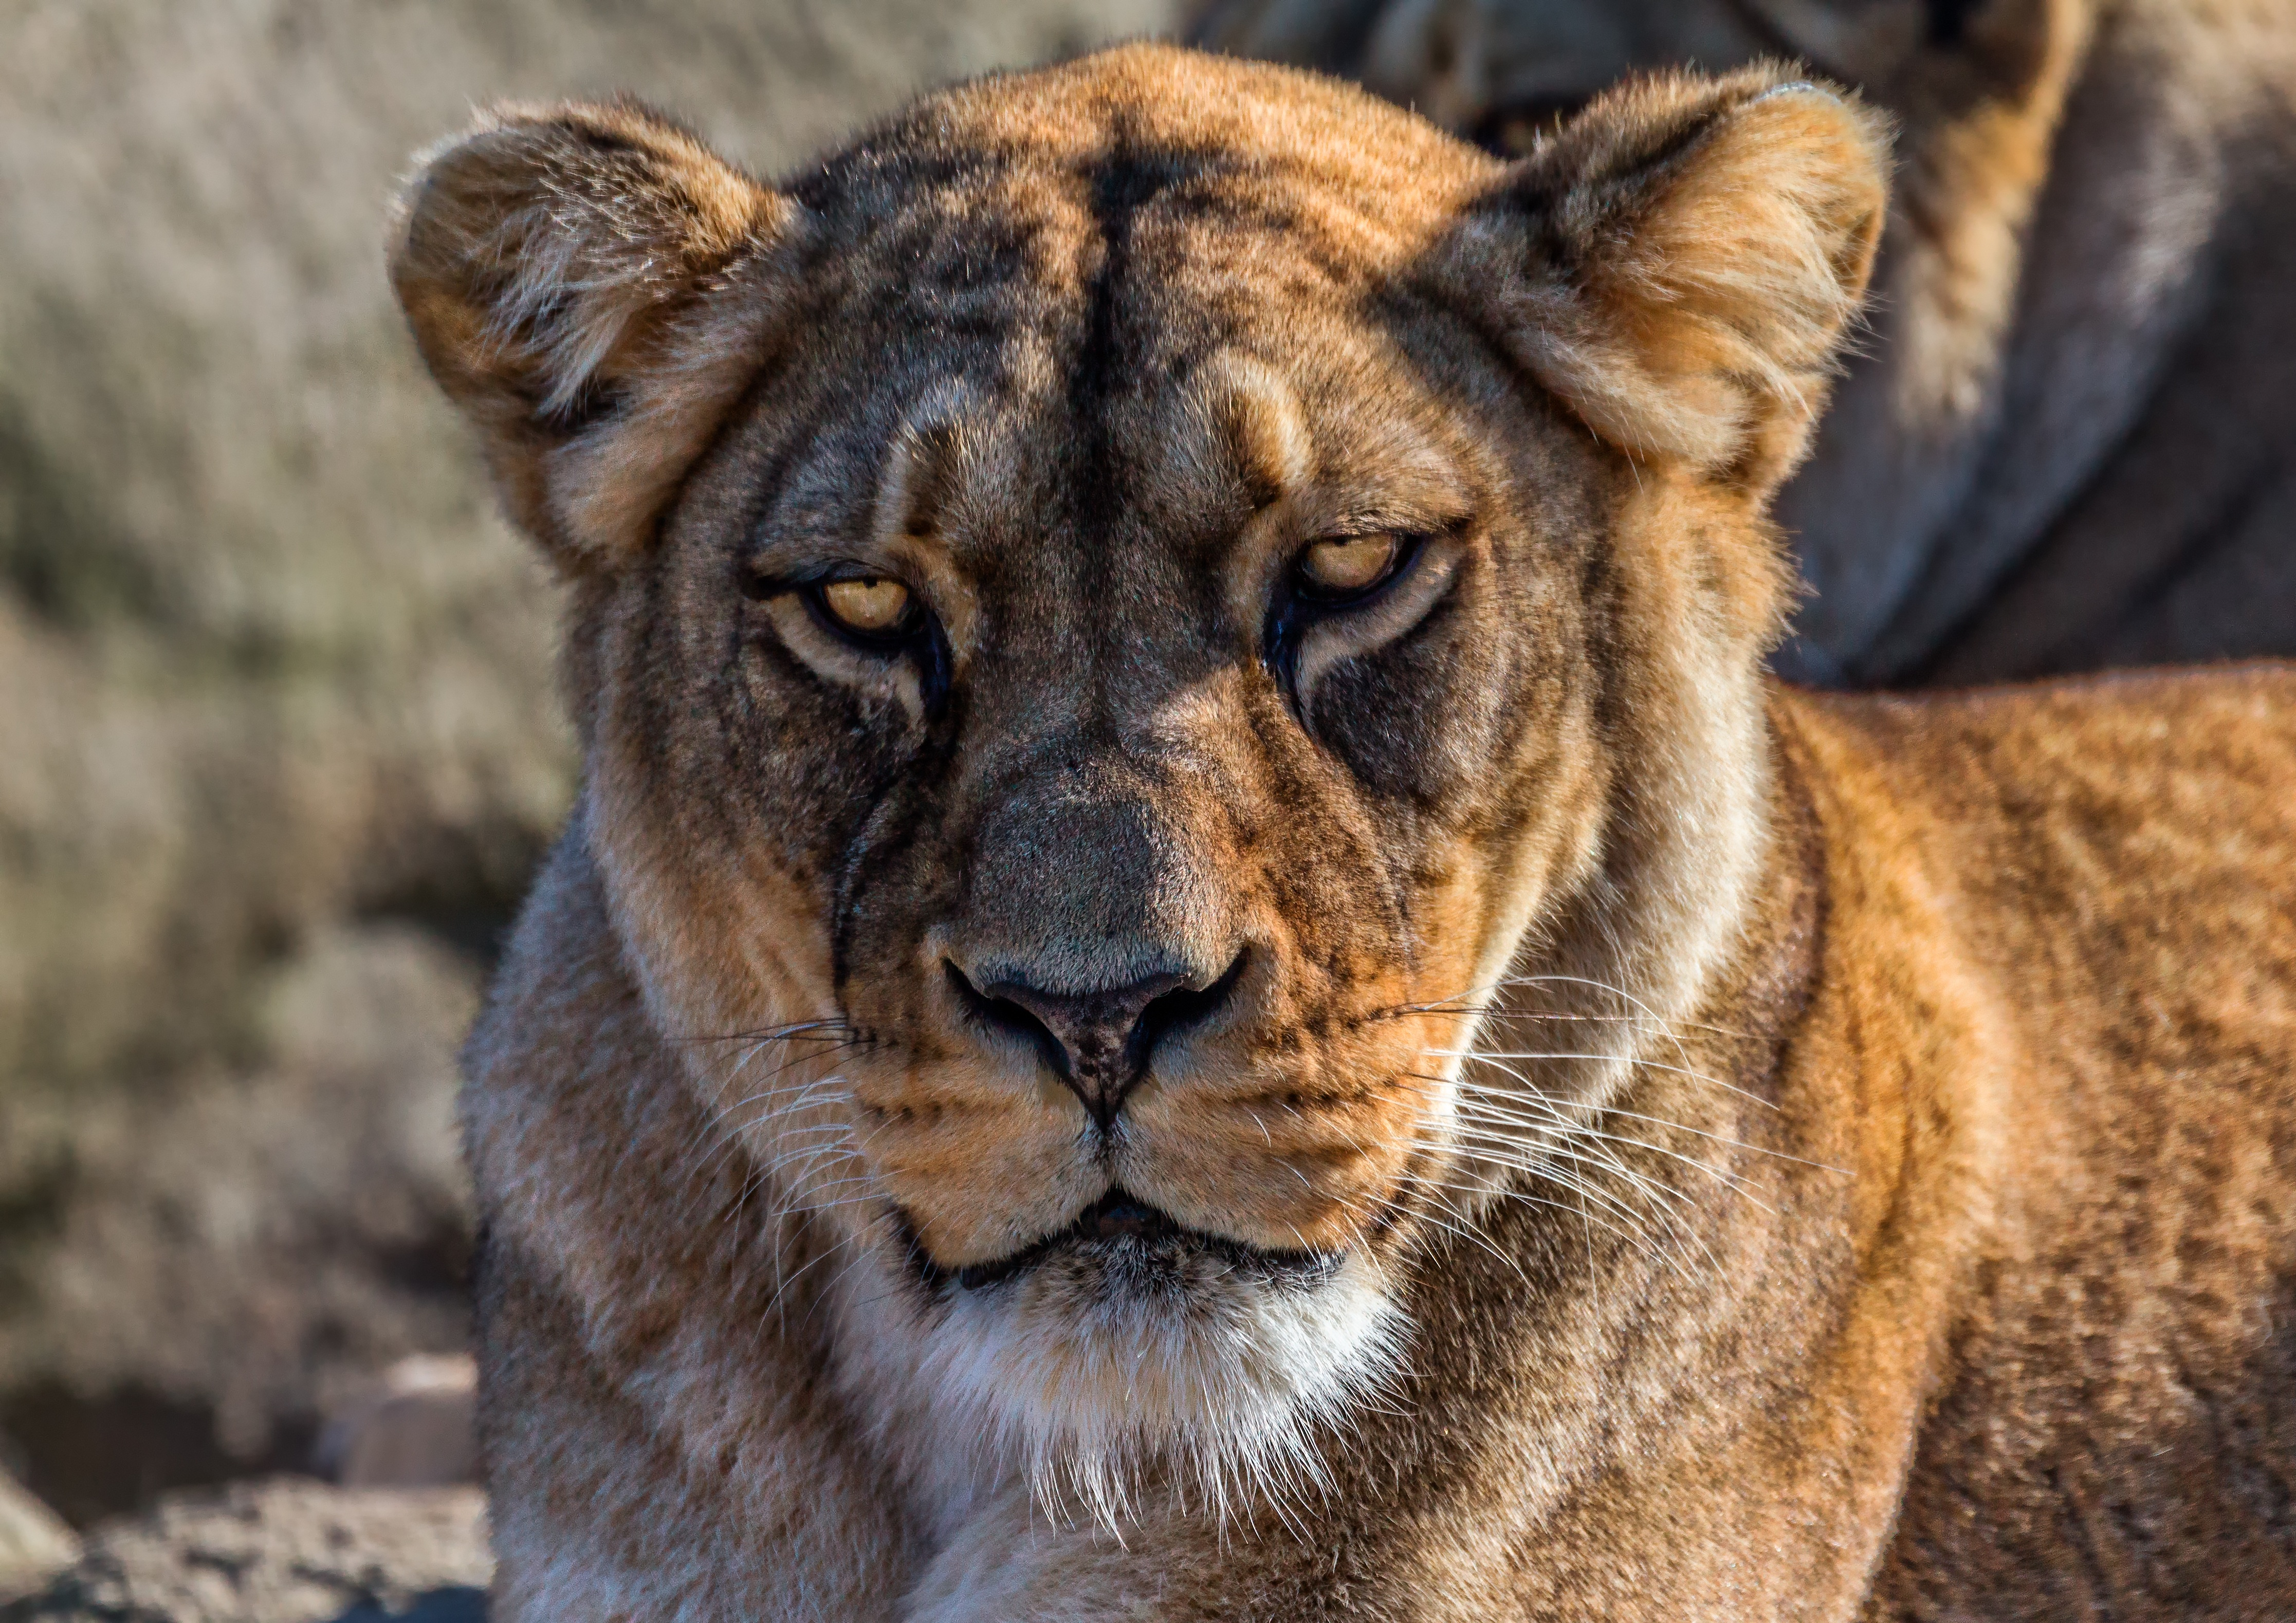 91545 download wallpaper Animals, Lion, Lioness, Sight, Opinion, Calmness, Tranquillity, Predator screensavers and pictures for free